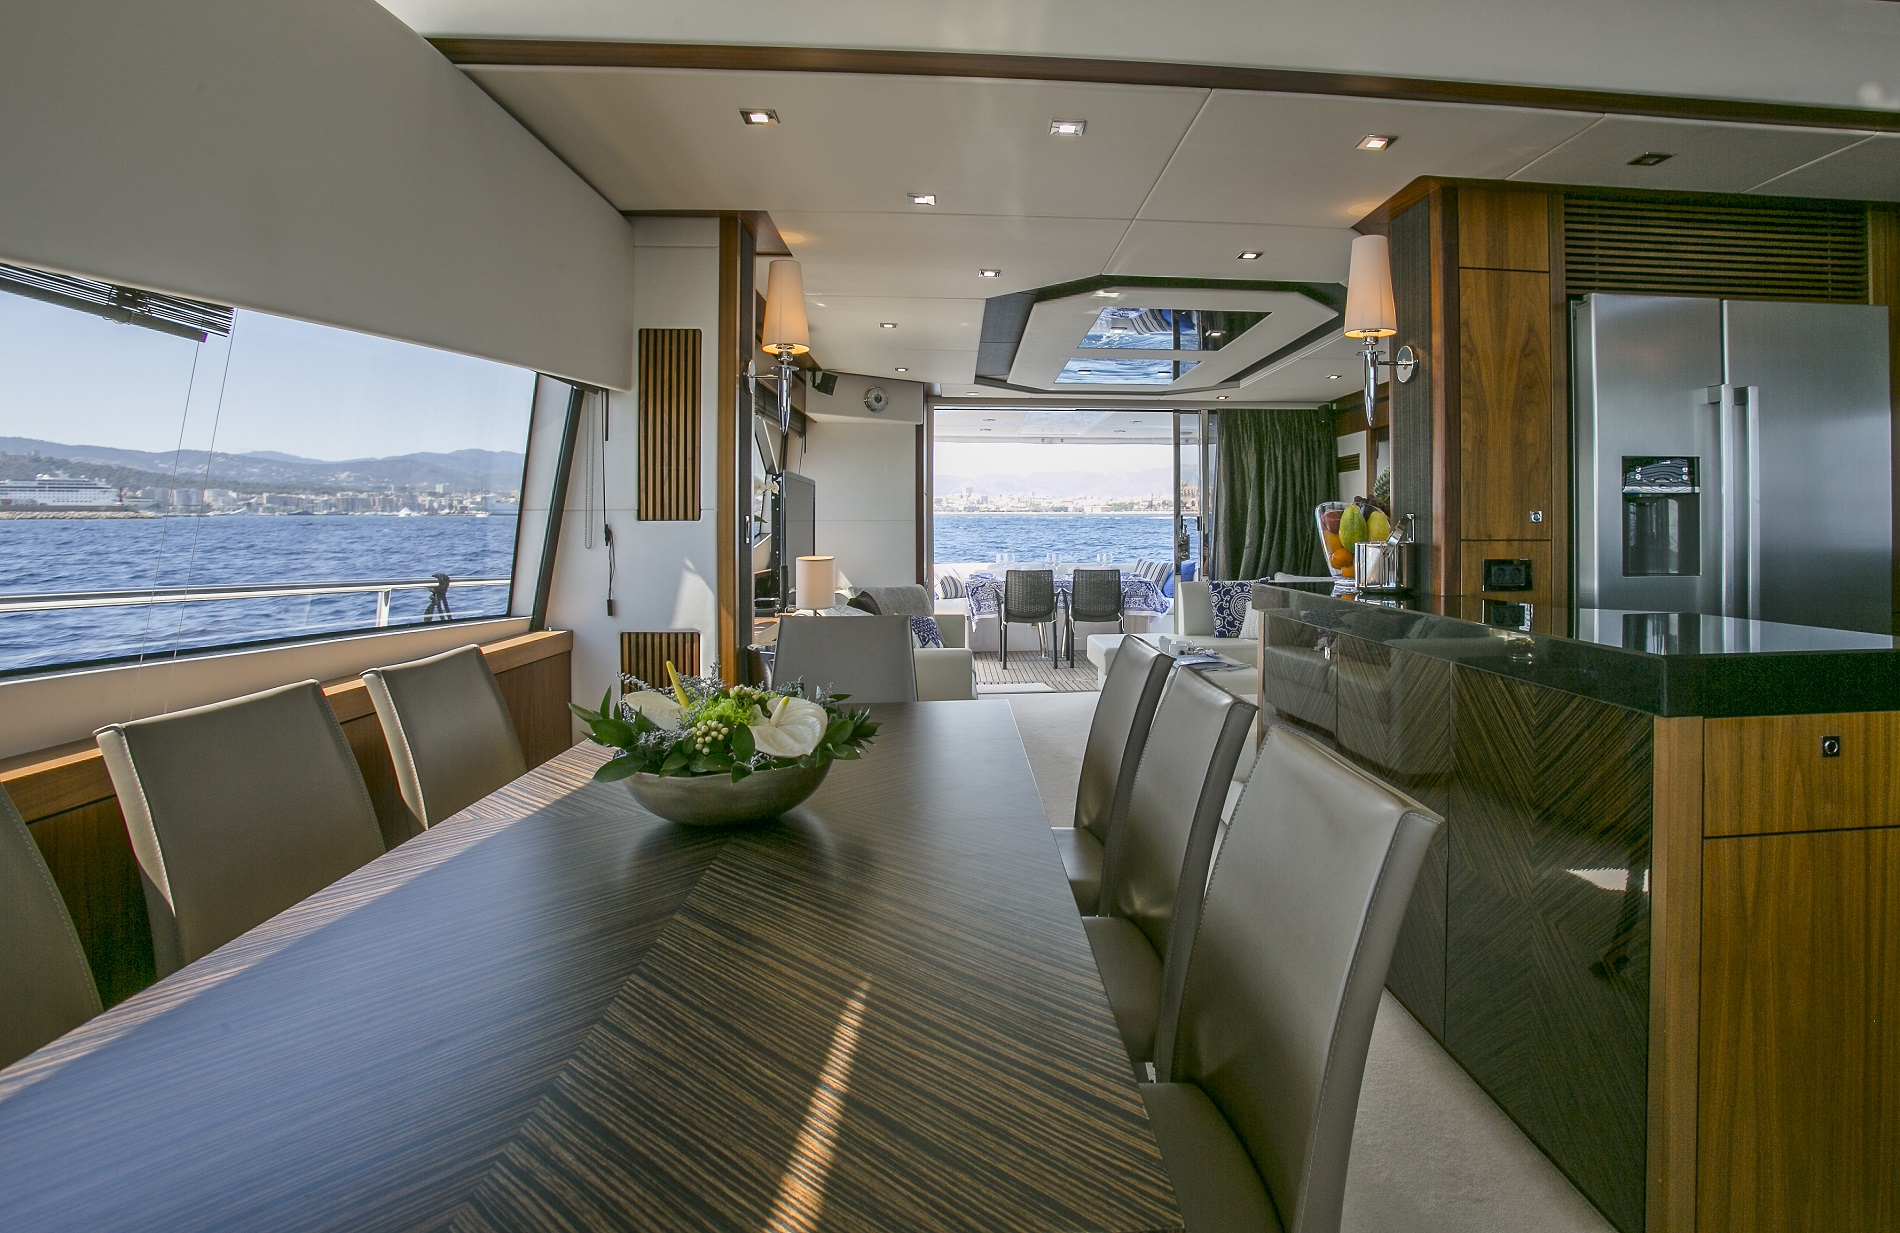 Sunseeker yacht 73M - Formal dining